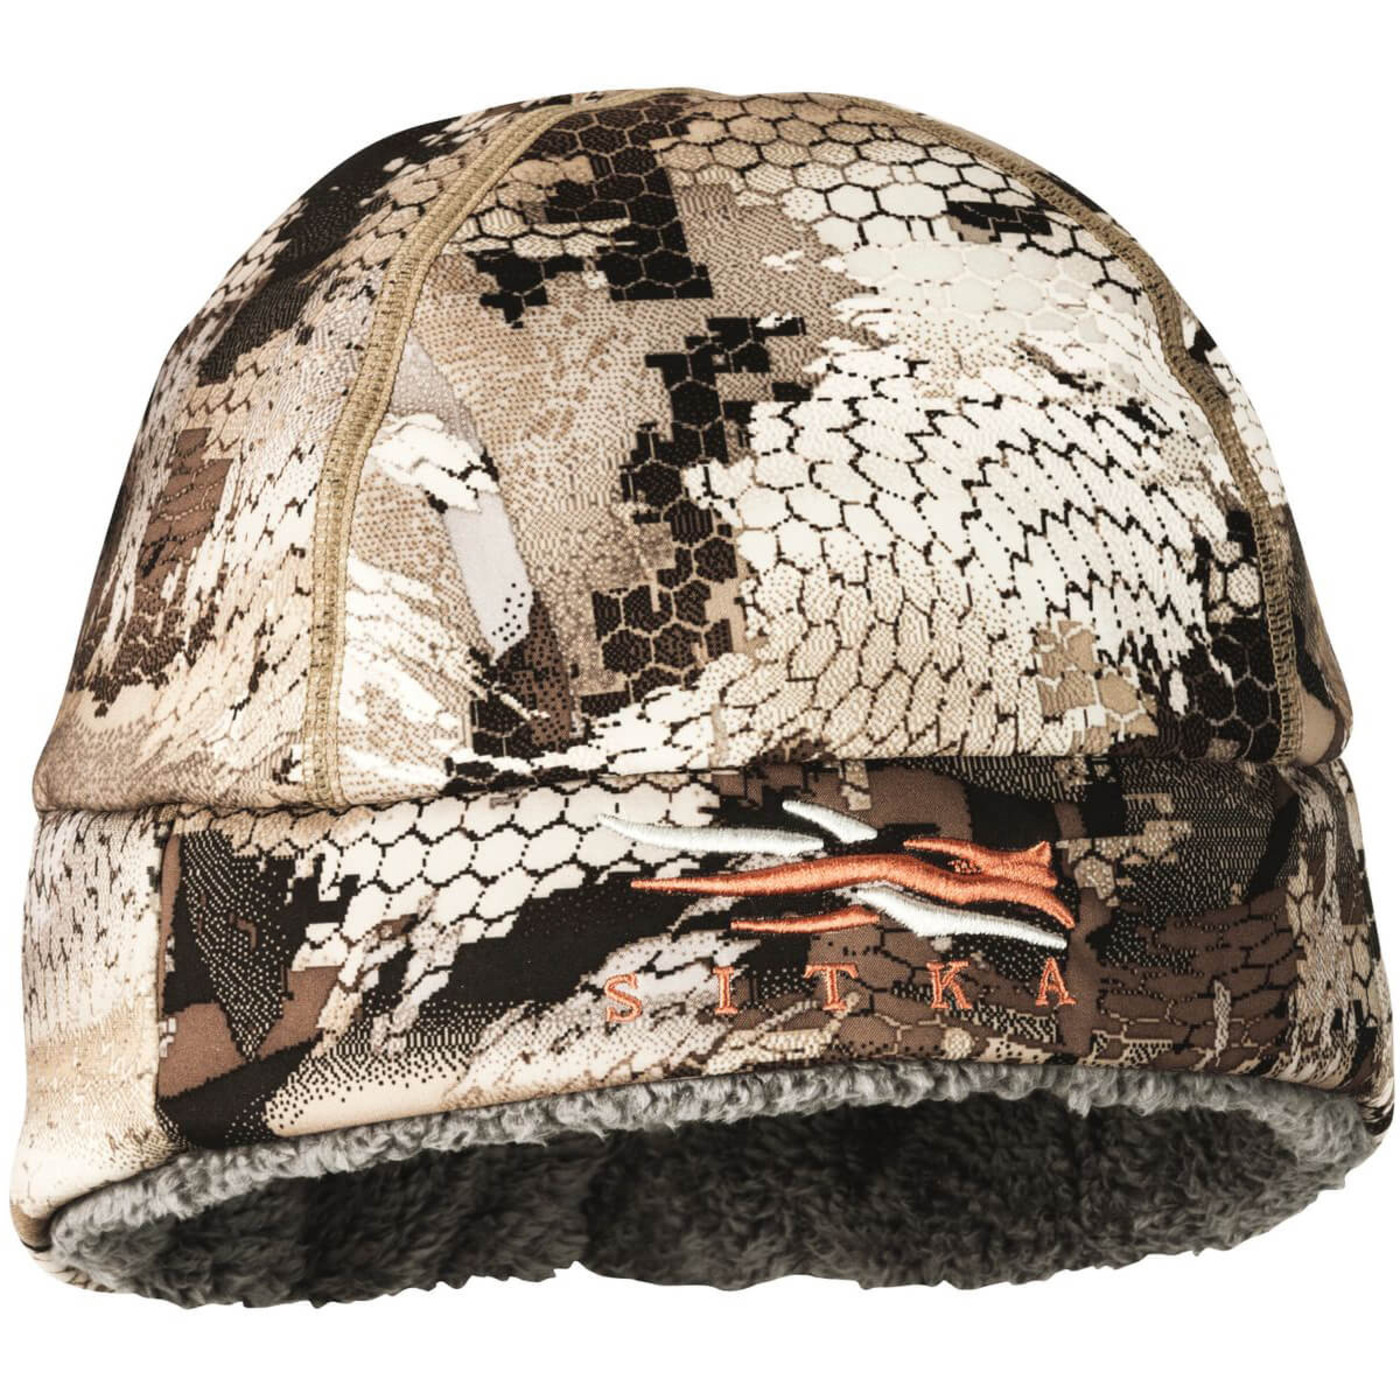 Sitka Boreal Windstopper Beanie in Waterfowl Marsh Color